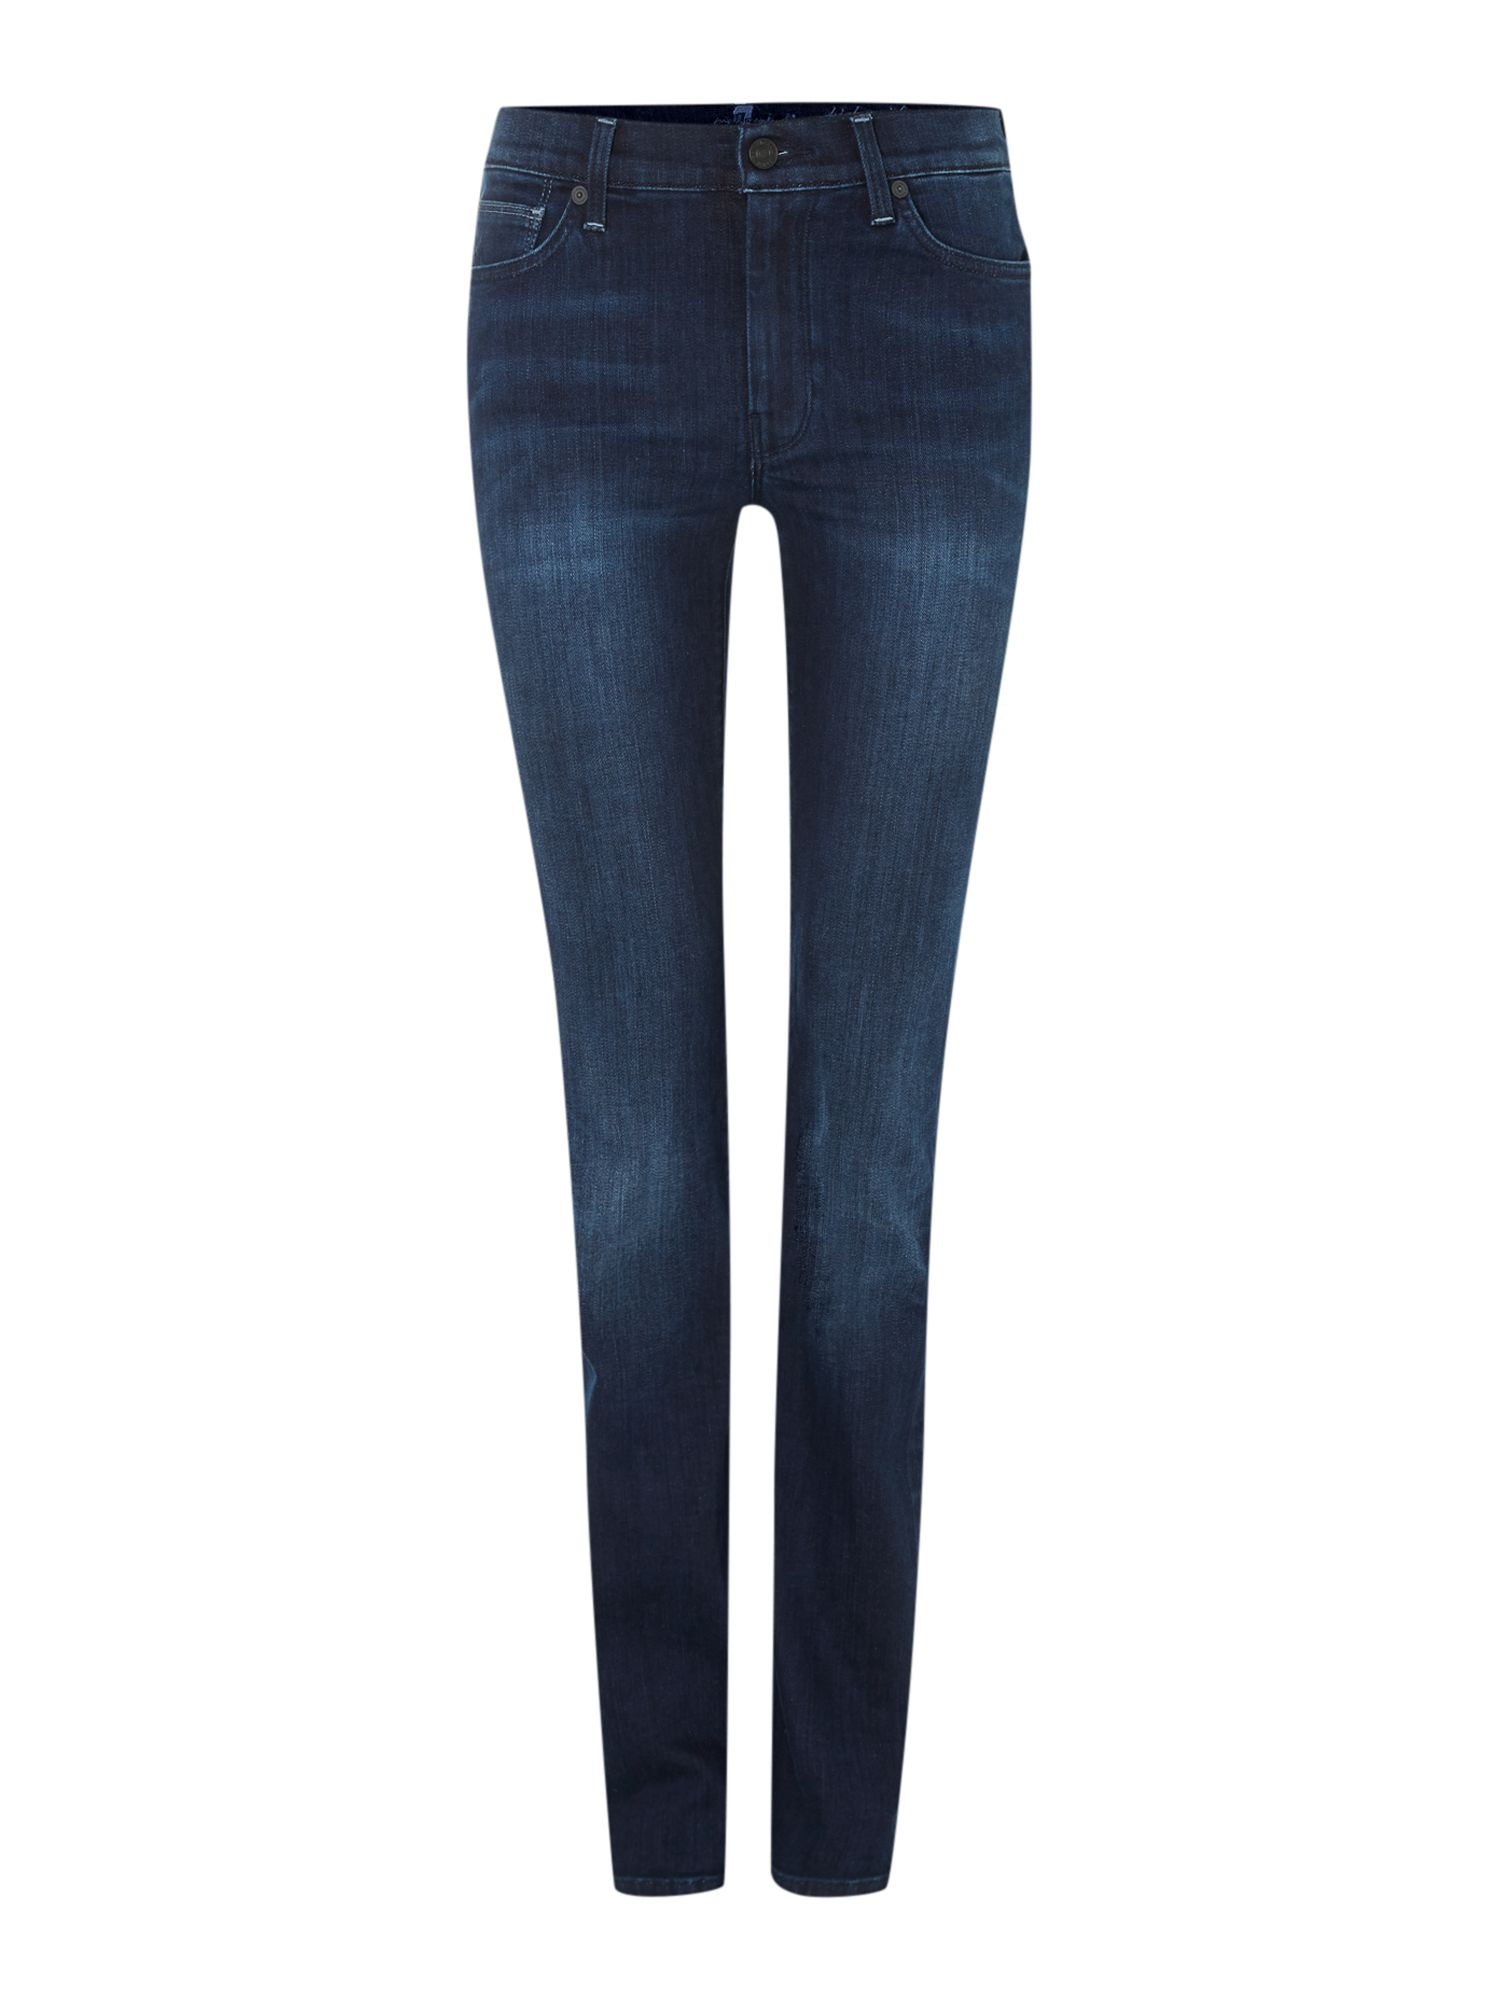 High waist straight leg in twilight indigo